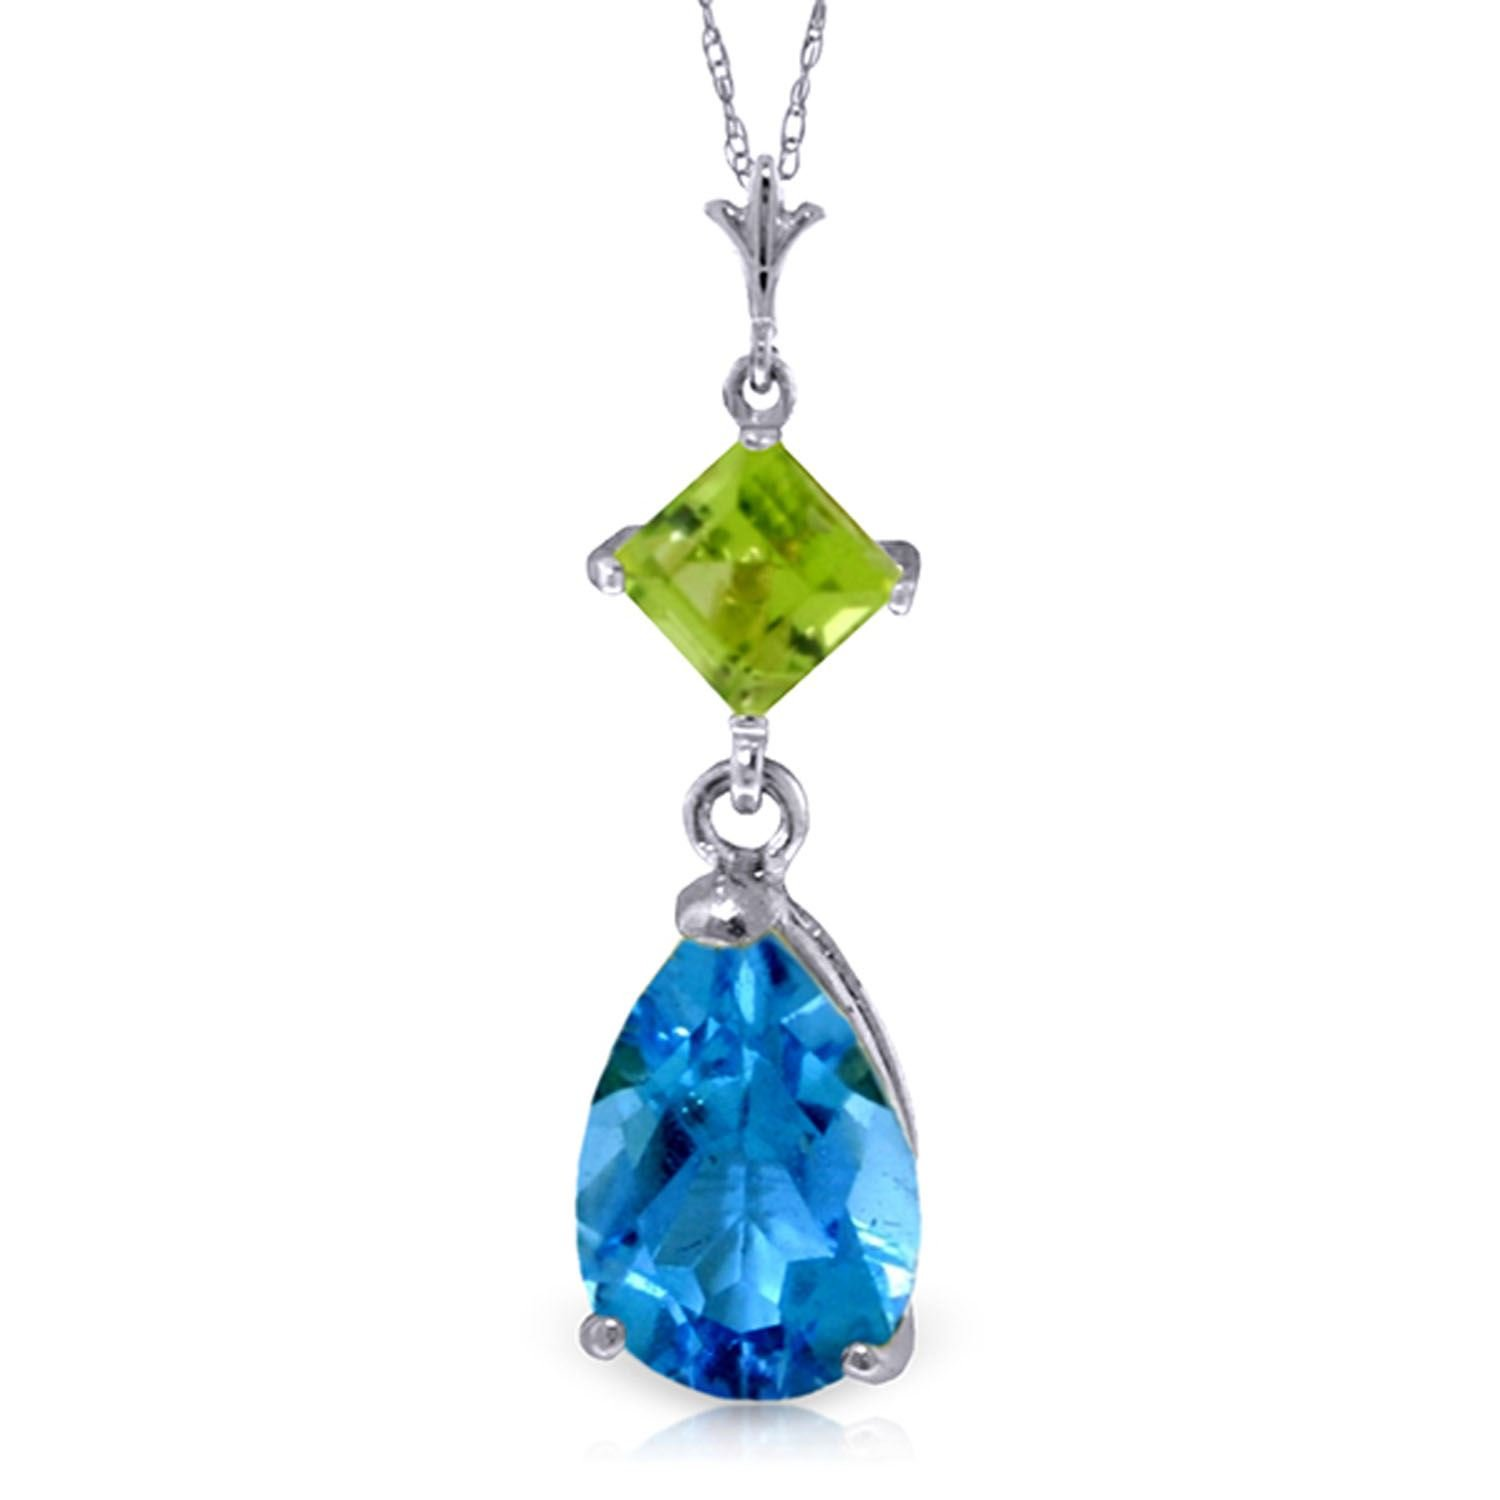 ALARRI 2 CTW 14K Solid White Gold Roll In The Grass Blue Topaz Peridot Necklace with 24 Inch Chain Length